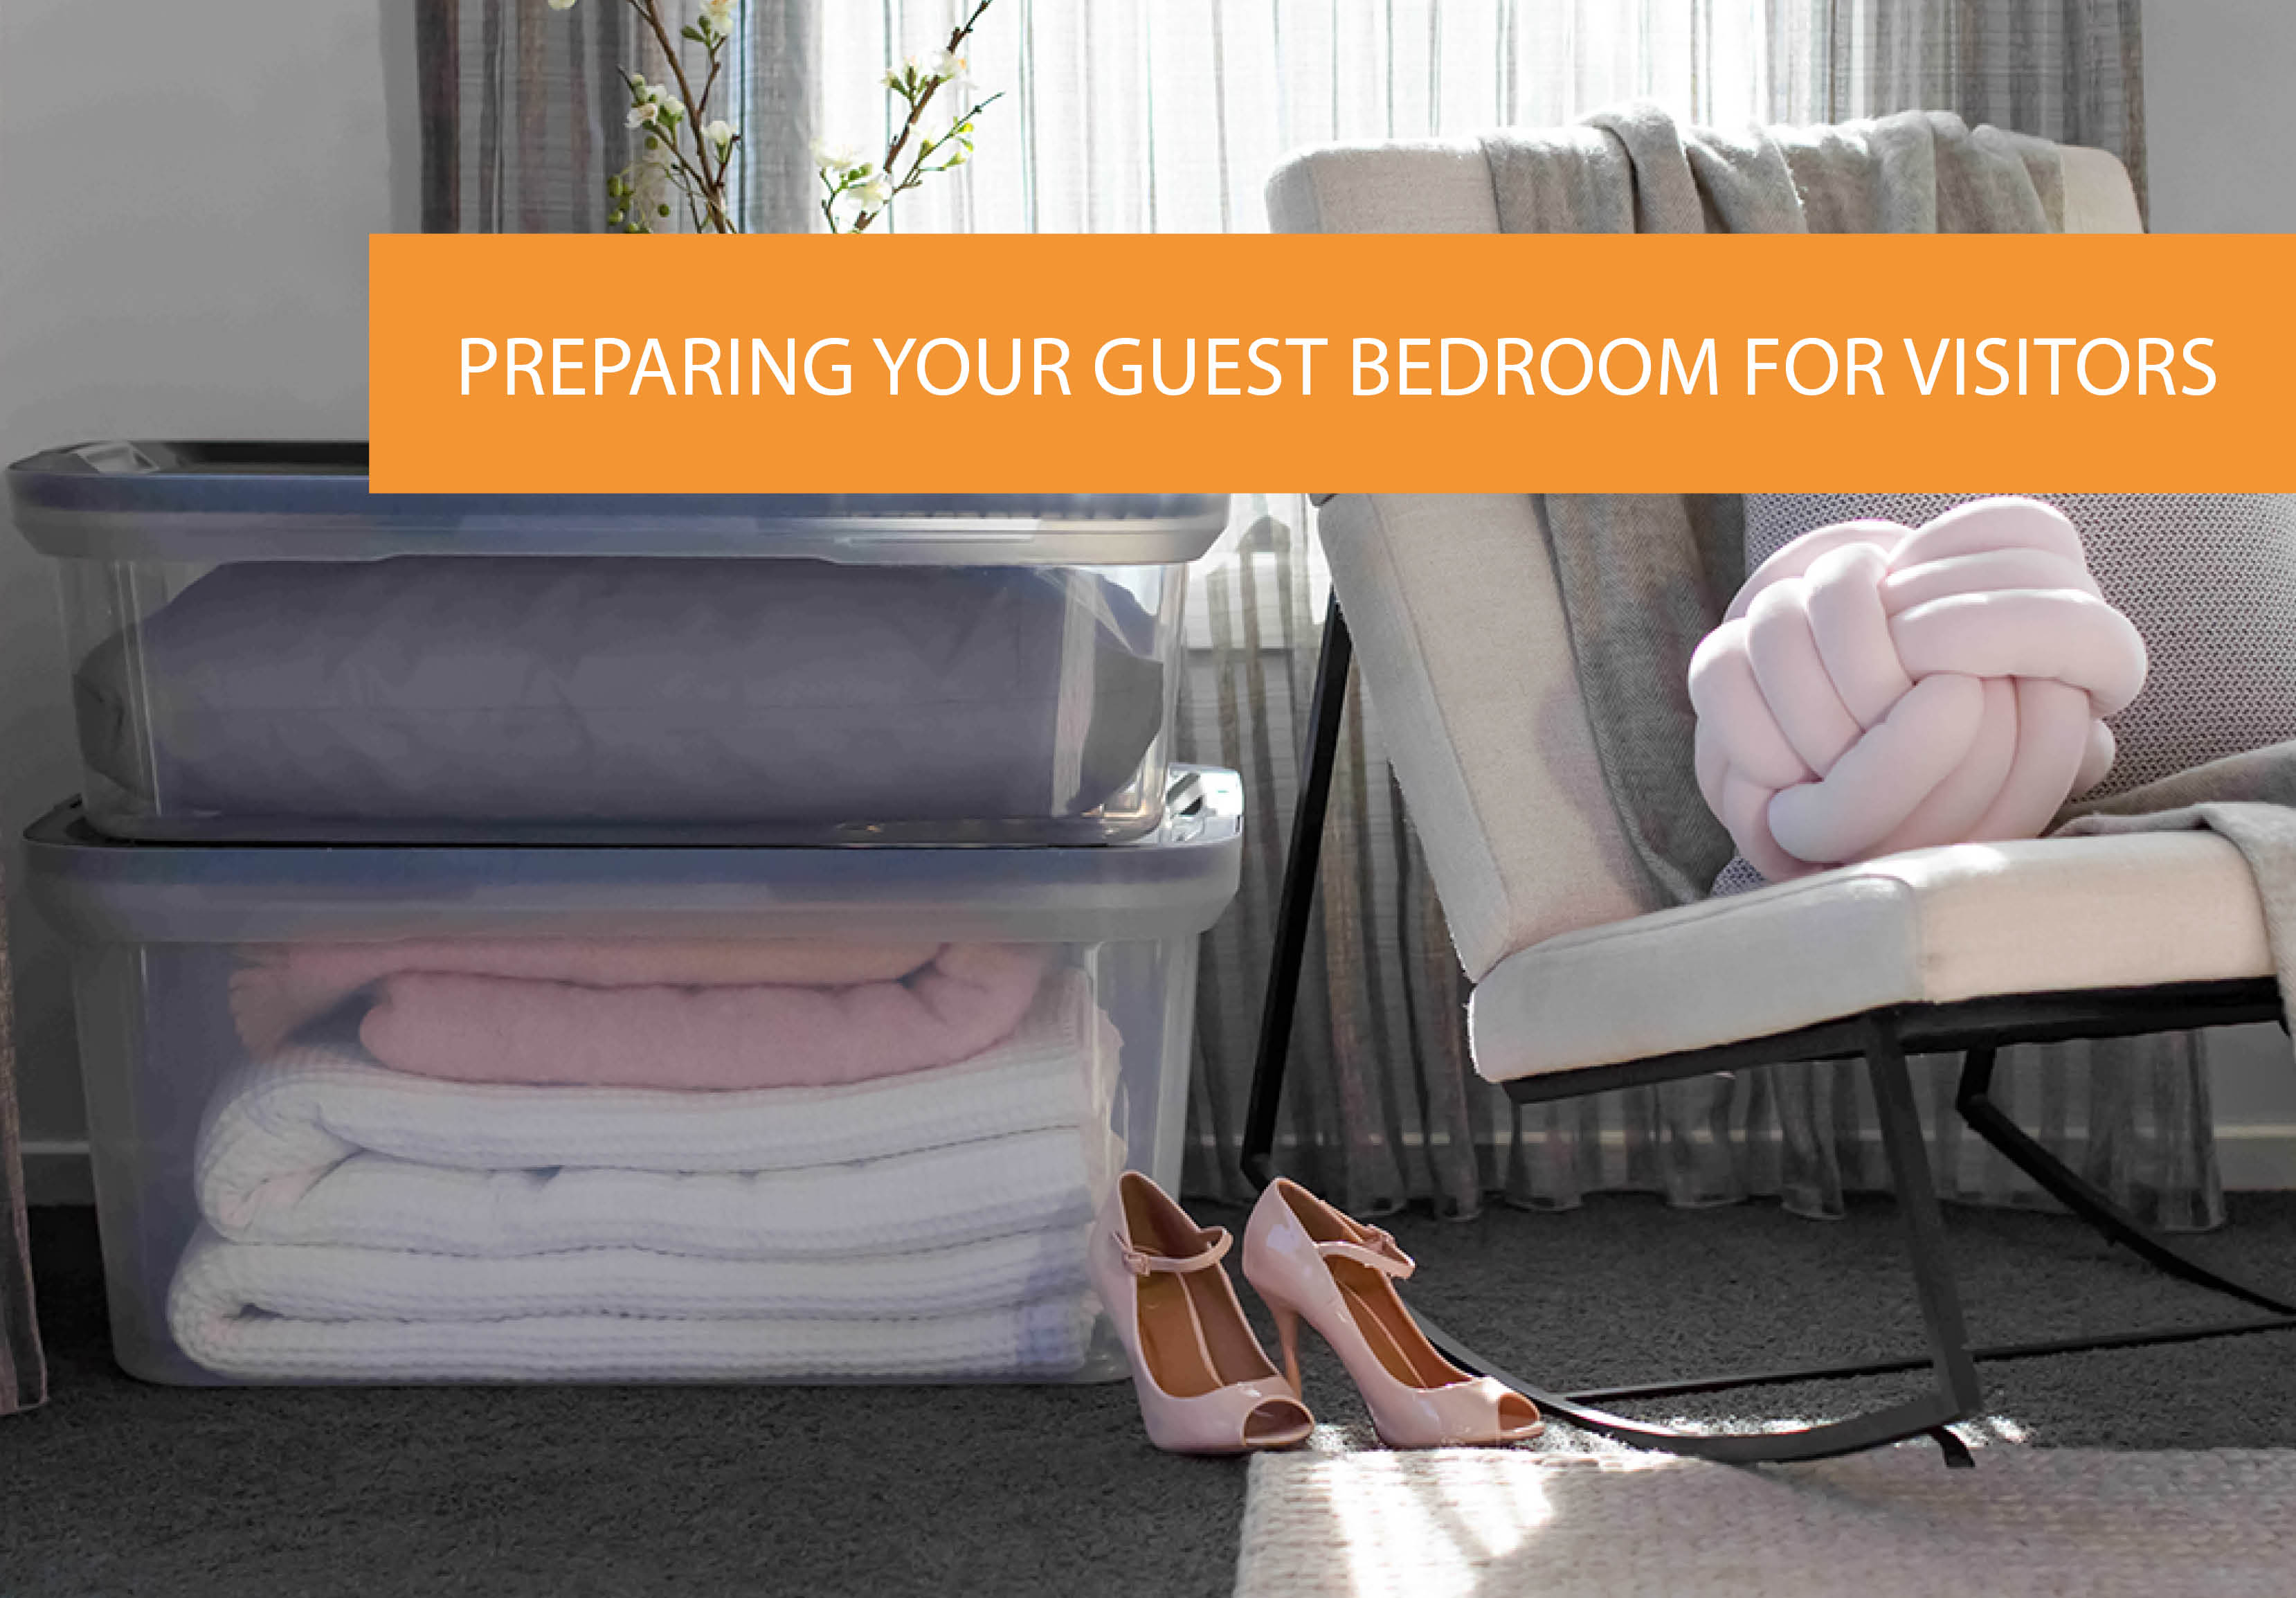 How To Prepare Your Guest Bedroom For Visitors